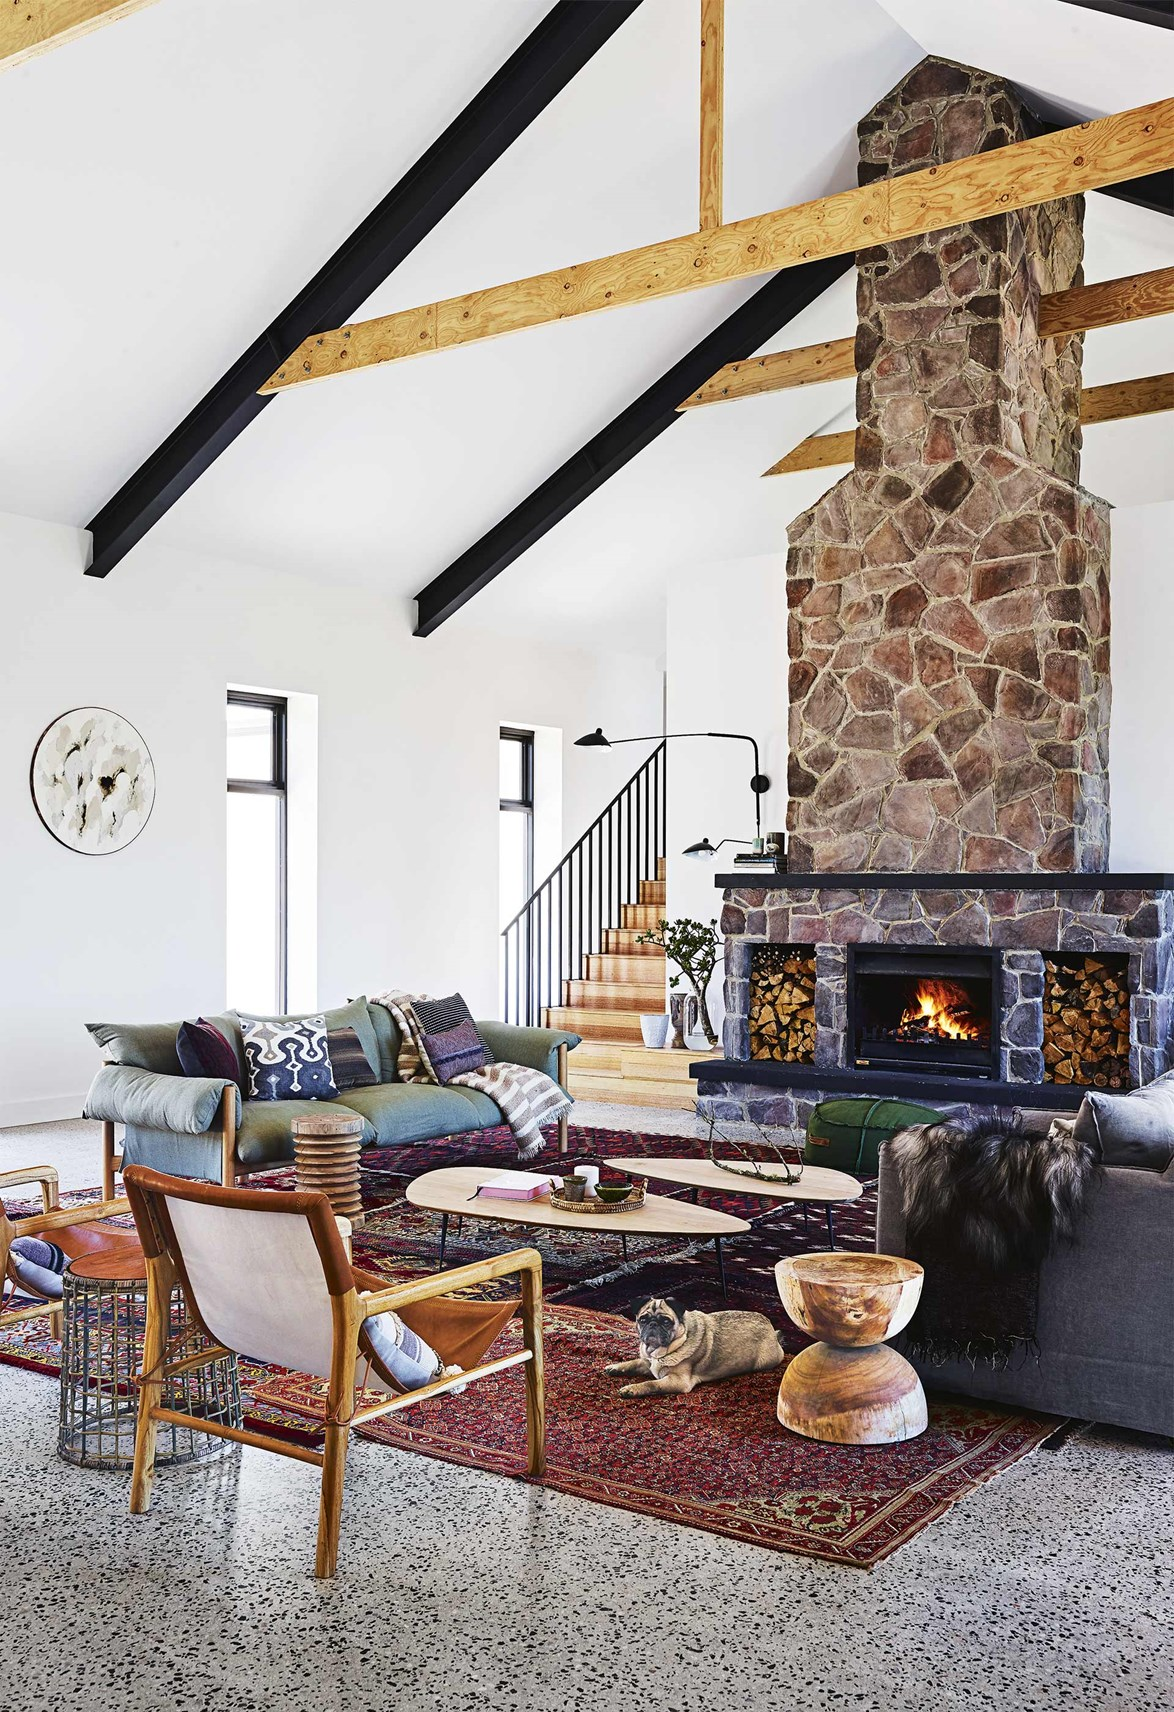 "Peter and Tracy Fleming's lifelong dream was to build a [farmhouse on their property in Brook Downs](https://www.homestolove.com.au/step-inside-this-cosy-country-farmhouse-with-modern-interiors-17468|target=""_blank""). Luckily their interior-designer son, *Inside Out's* style editor Jono Fleming, along with Green Apple Interiors & Design, were around to help! The traditional farmhouse look has been re-imagined here with matte black surfaces, timber and steel cathedral ceilings and a stone fireplace. *Photo: Anson Smart / Styling: Jono Fleming / Story: Inside Out*"